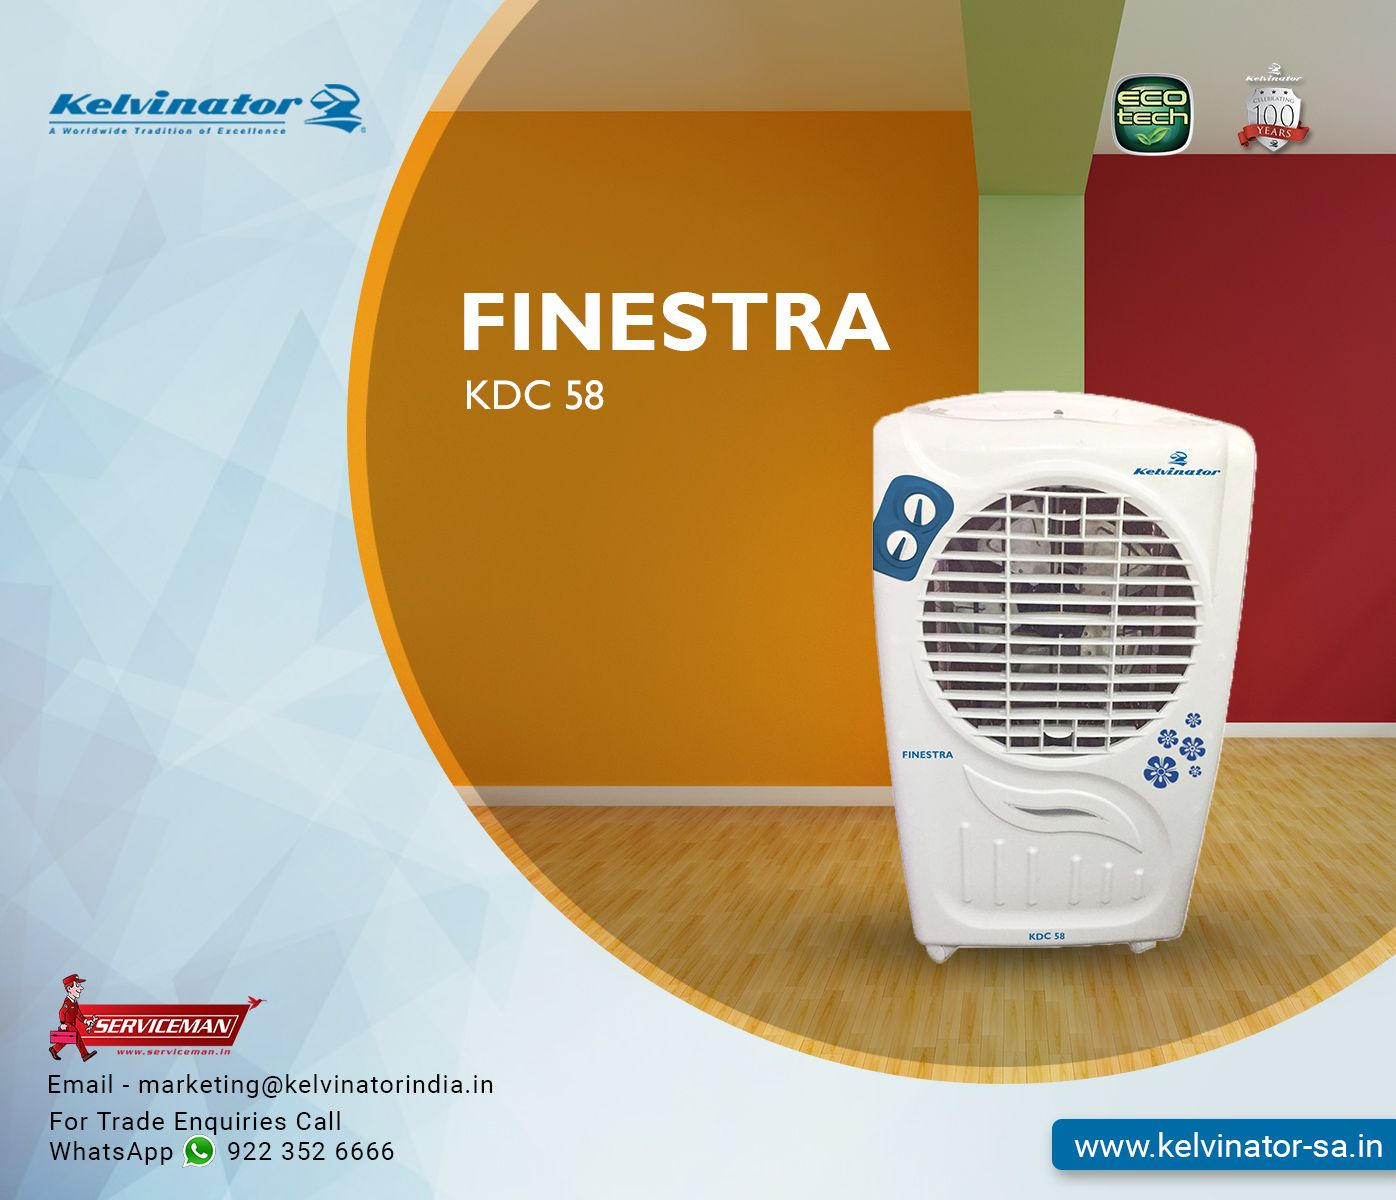 Kelvinator's Finestra Air Cooler comes with Large water